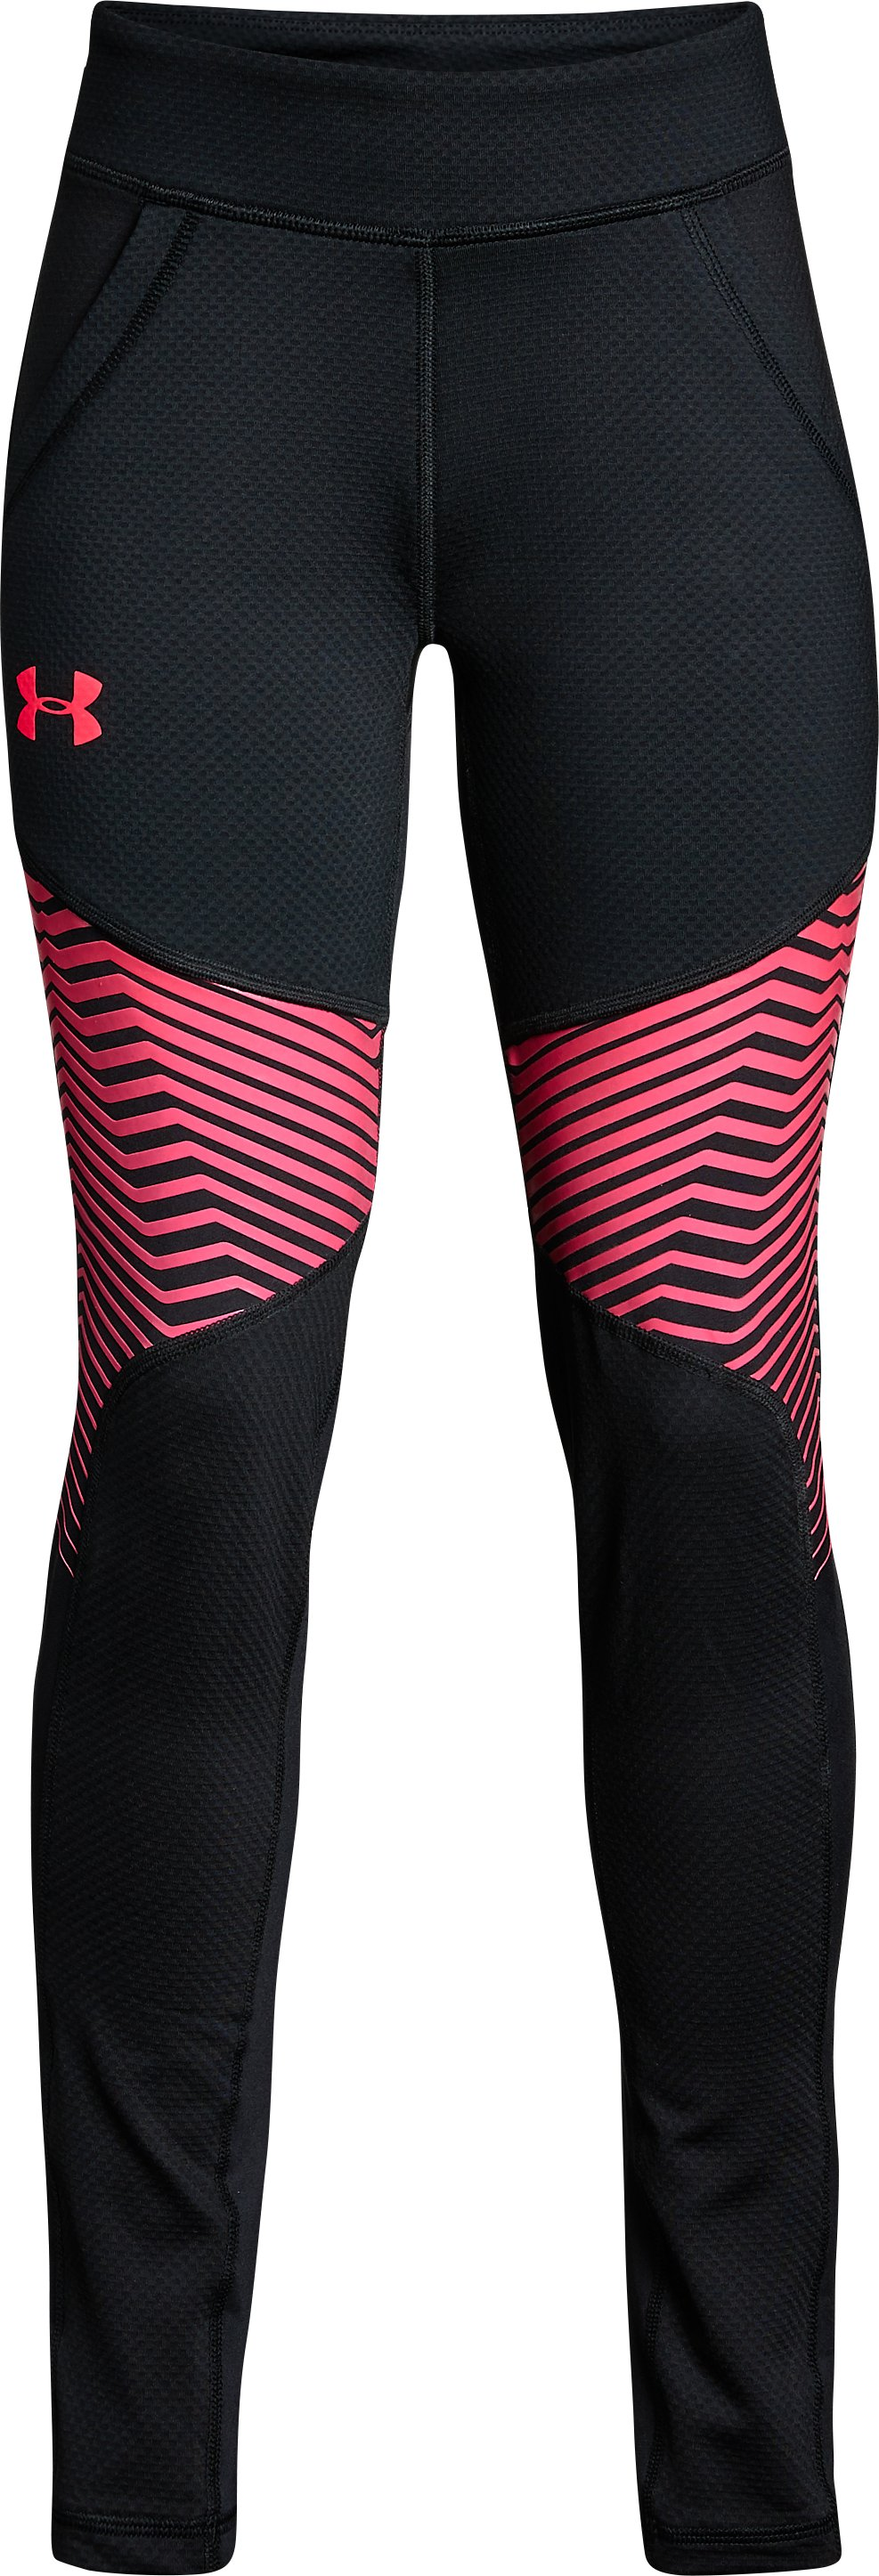 Girls' ColdGear® Reactor Leggings, Black , undefined